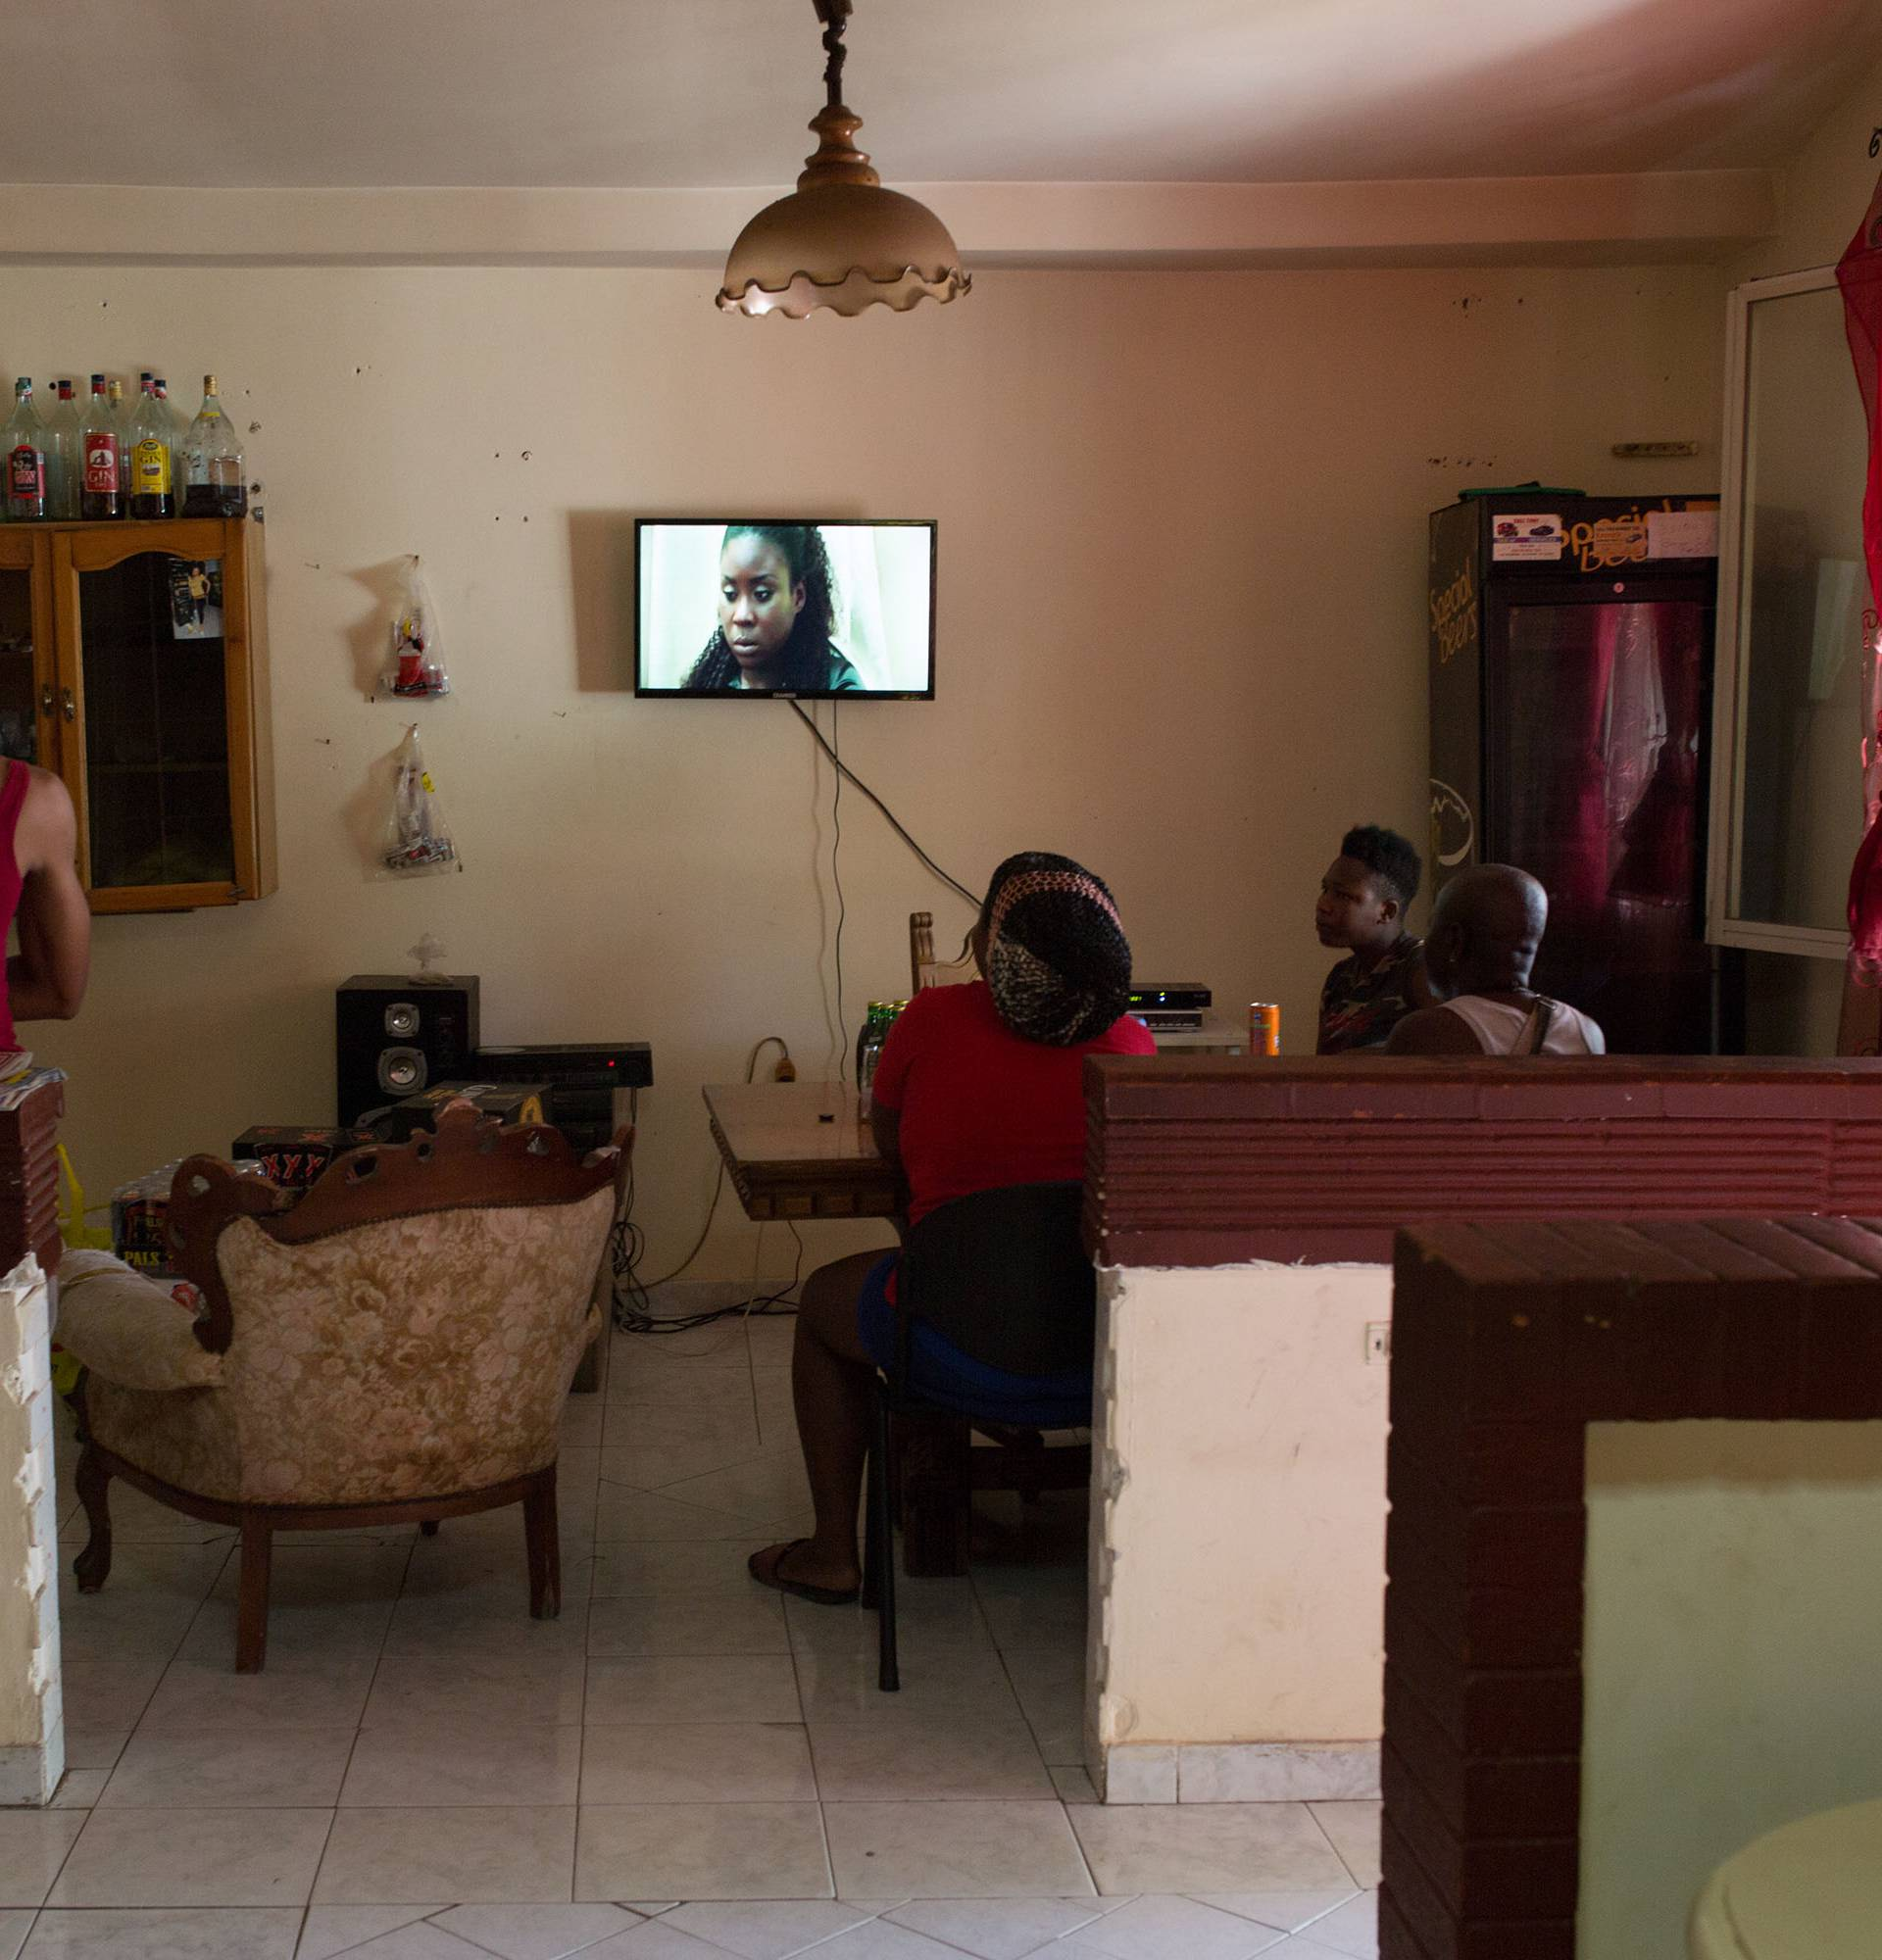 Migrants watching a TV series on Nigerian channel ROK in a connection house in Castel Volturno, Italy on August 23, 2018. Thomson Reuters Foundation / Valerio Muscella